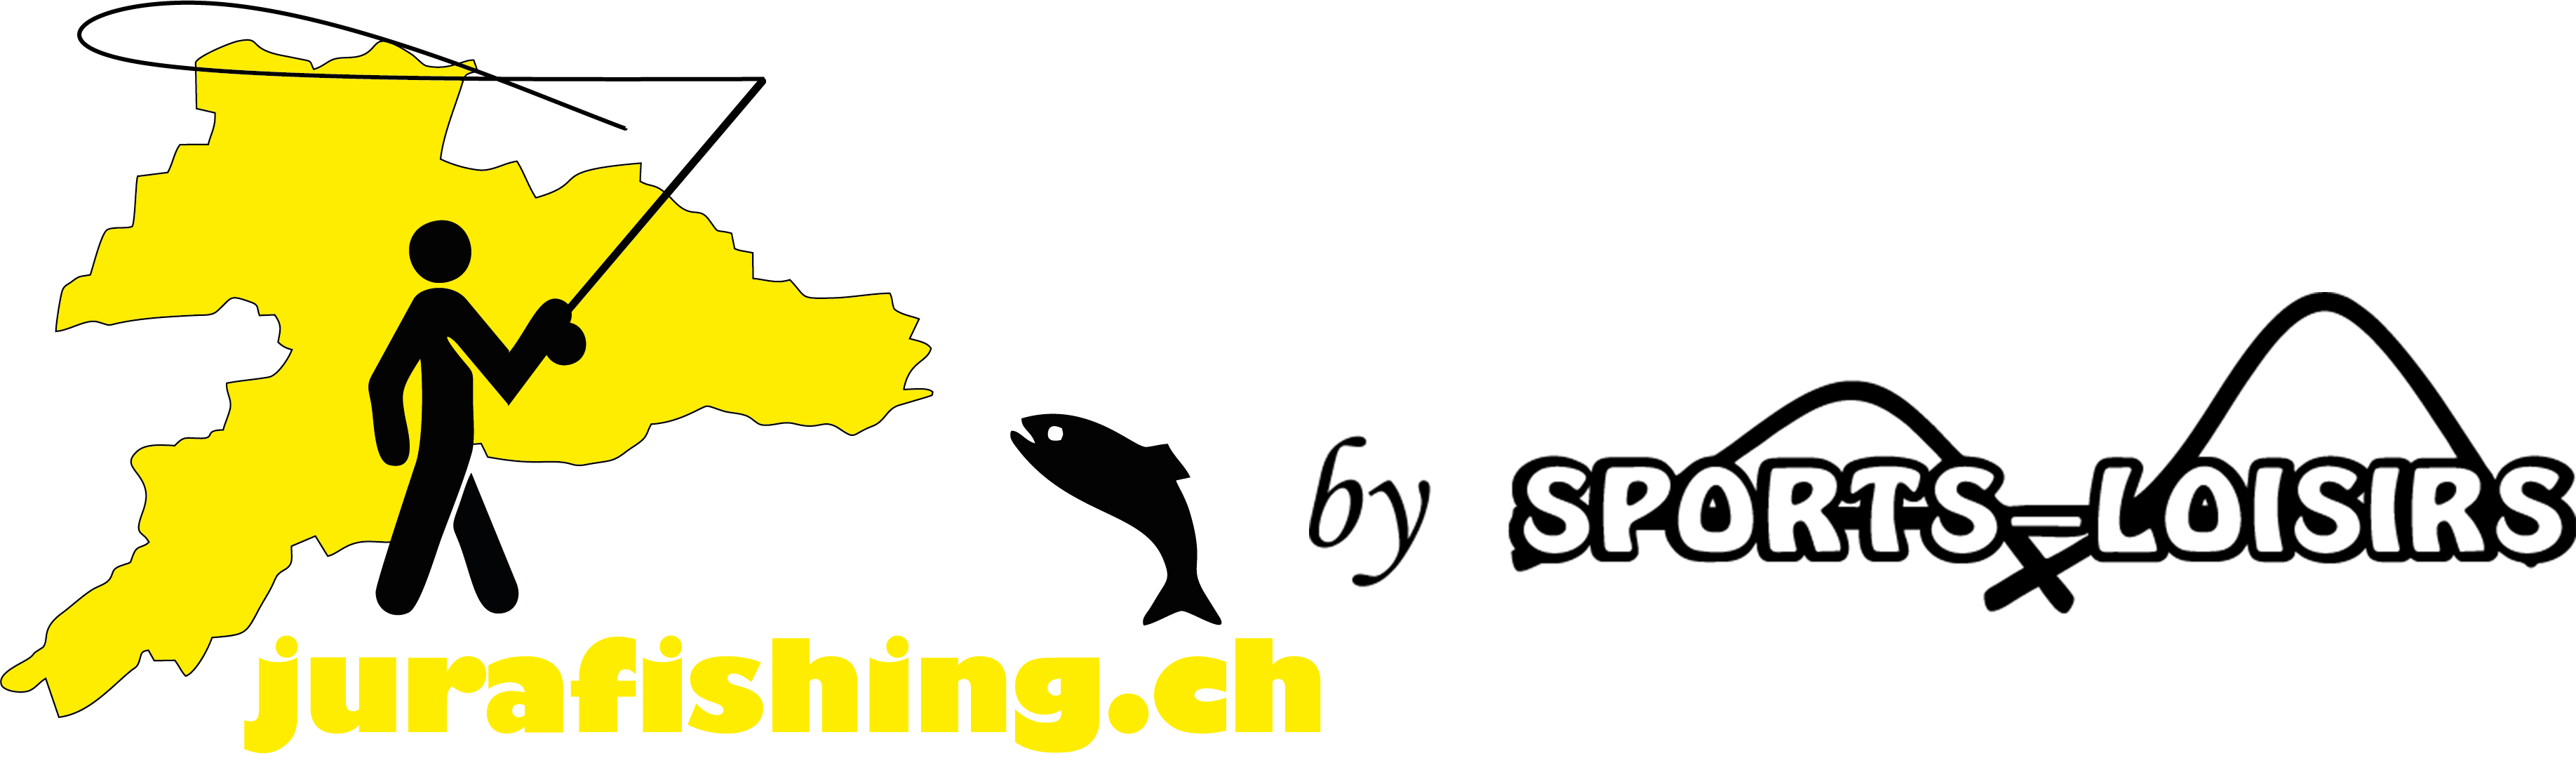 logo jurafishing by SL